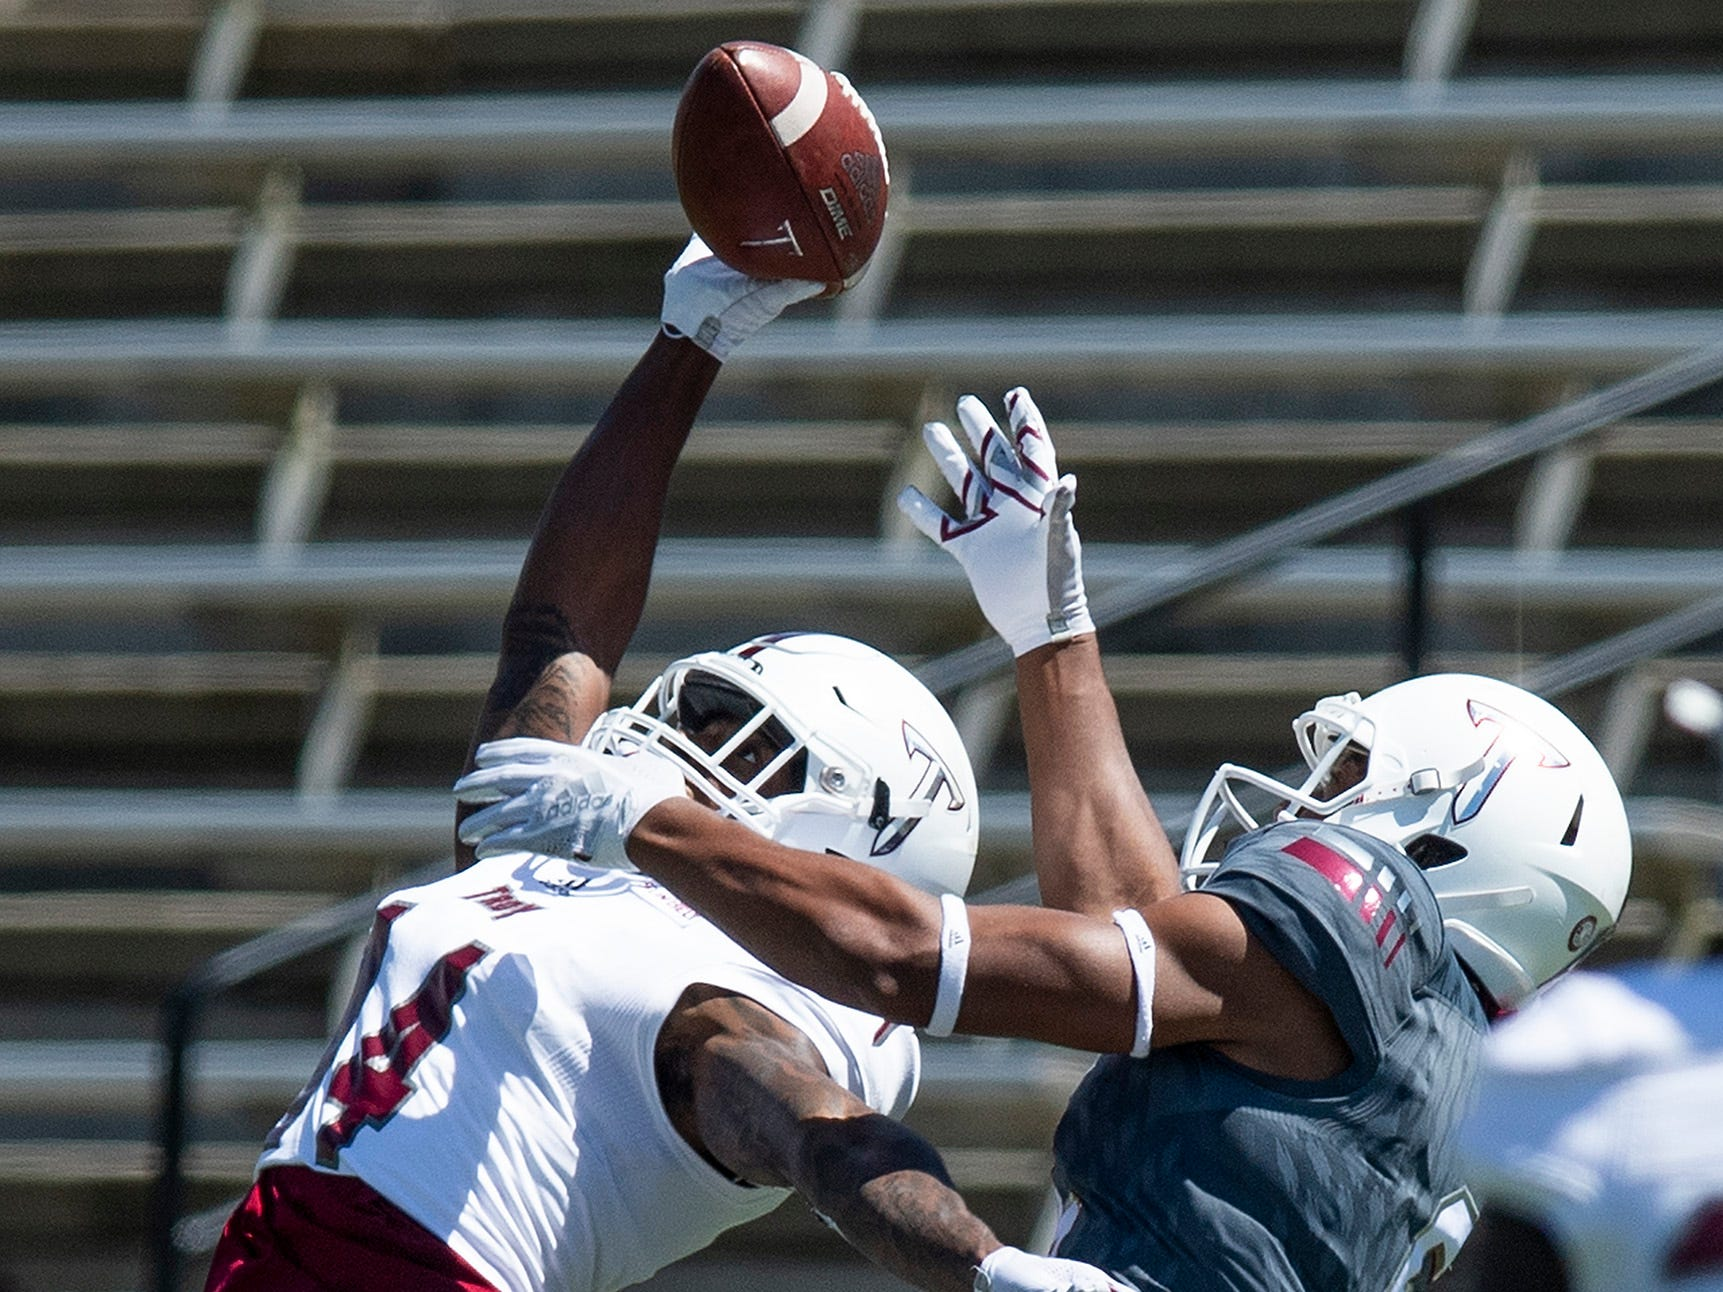 Troy cornerback Terence Dunlap (14) breaks up a pass intended for wide receiver Khalil McClain (6) during the Troy University T-Day spring scrimmage game in Troy, Ala., on Saturday April 20, 2019.